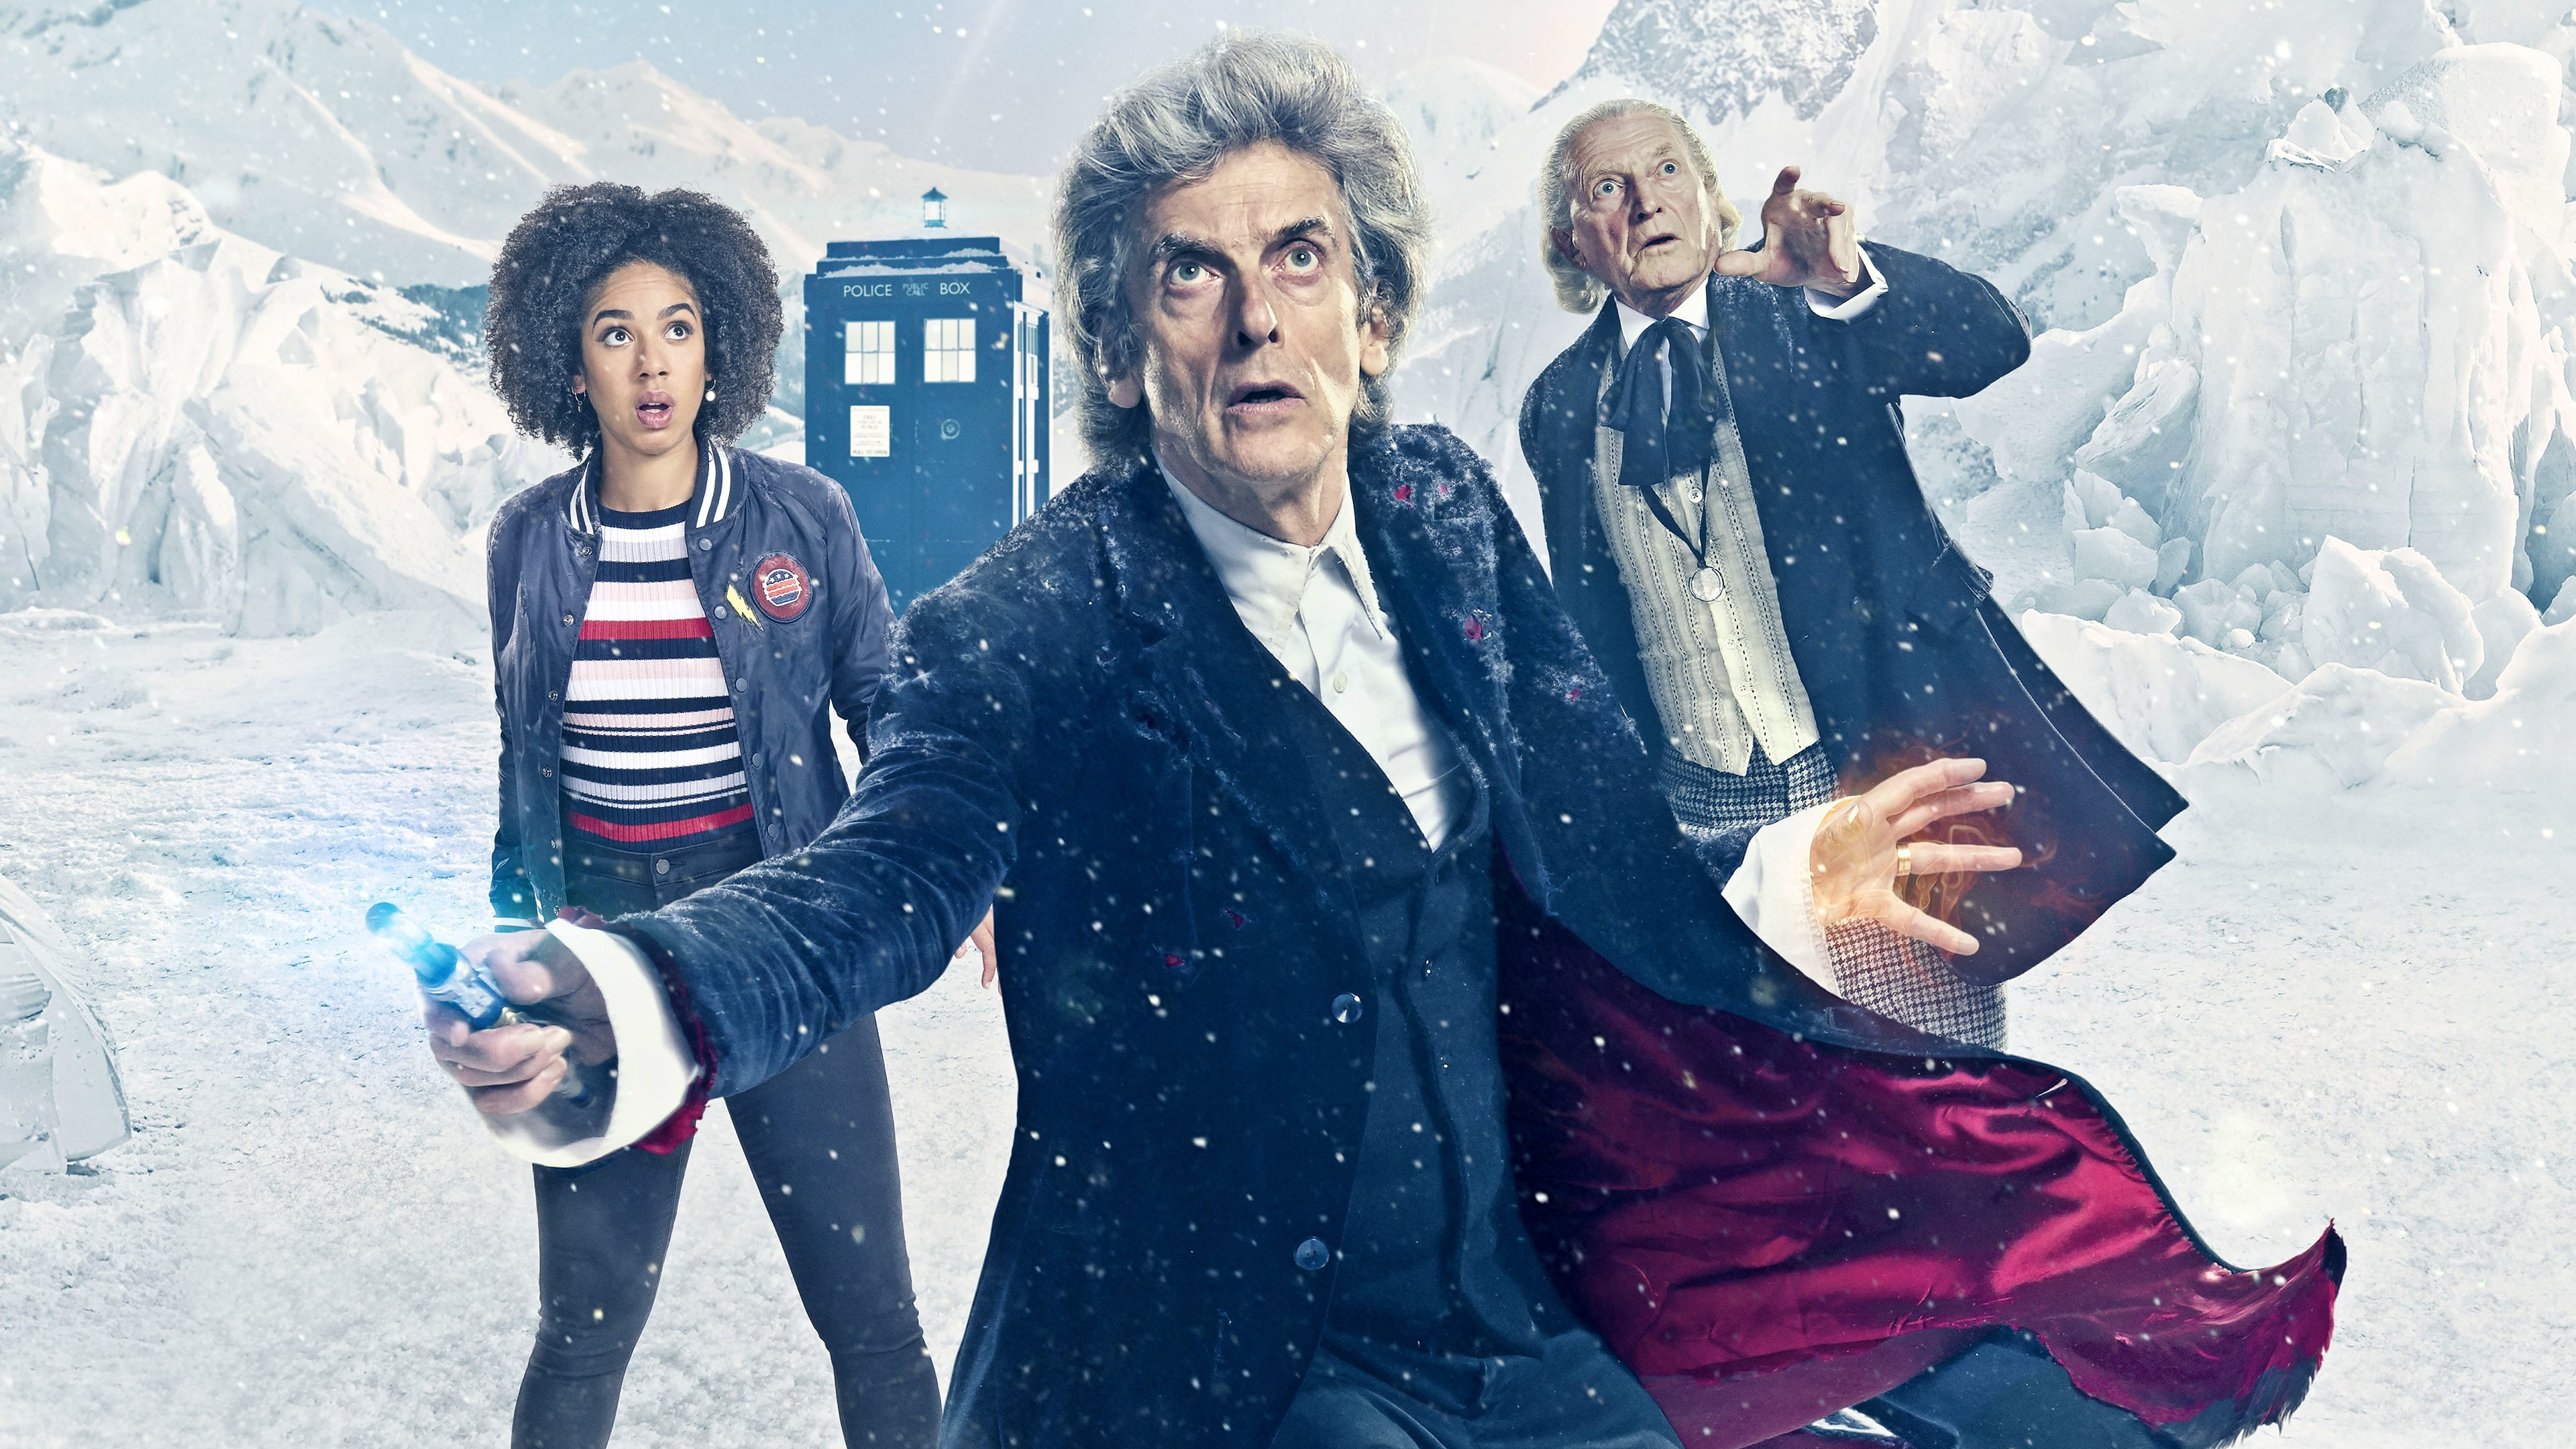 Doctor Who - Season 0 Episode 154 : Twice Upon a Time